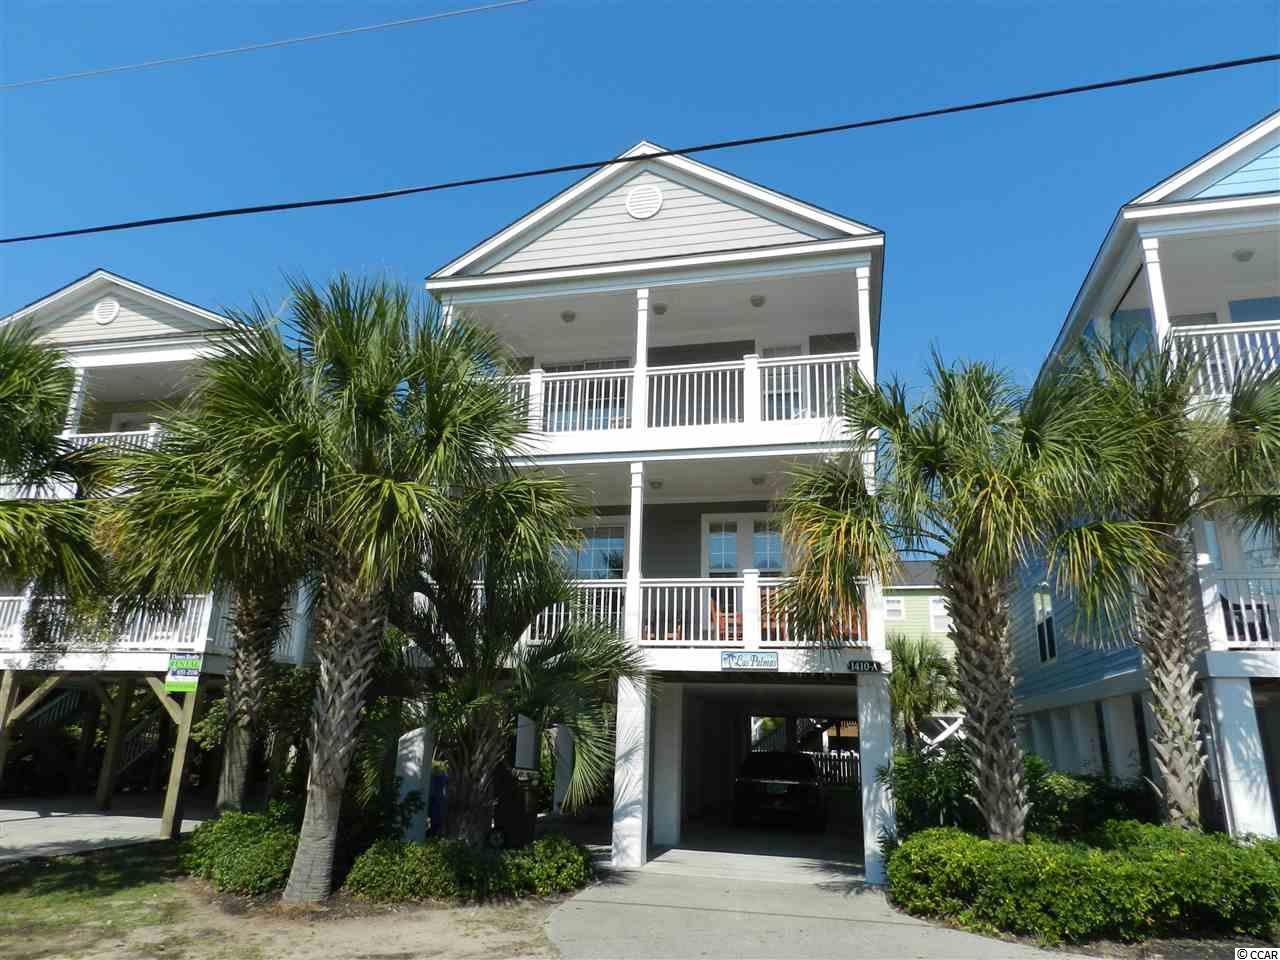 Fantastic 2nd Row Raised Beach House.  Enjoy views of the ocean from two porches; One off the Master and one off the livingroom.  Fully equipped kitchen that features a breakfast bar with an extra seating for six.  This has an awesome floor plan.  Room for the entire family.  You can sit on the back porch and watch everyone in your own private swimming pool.  The pool even can be heated for the cooler nights....Each bedroom has its own bathroom and the master has a jacuzzi tub and with a glass enclosed shower. You will love this home for either a vacation rental, 2nd home or permanent residence....